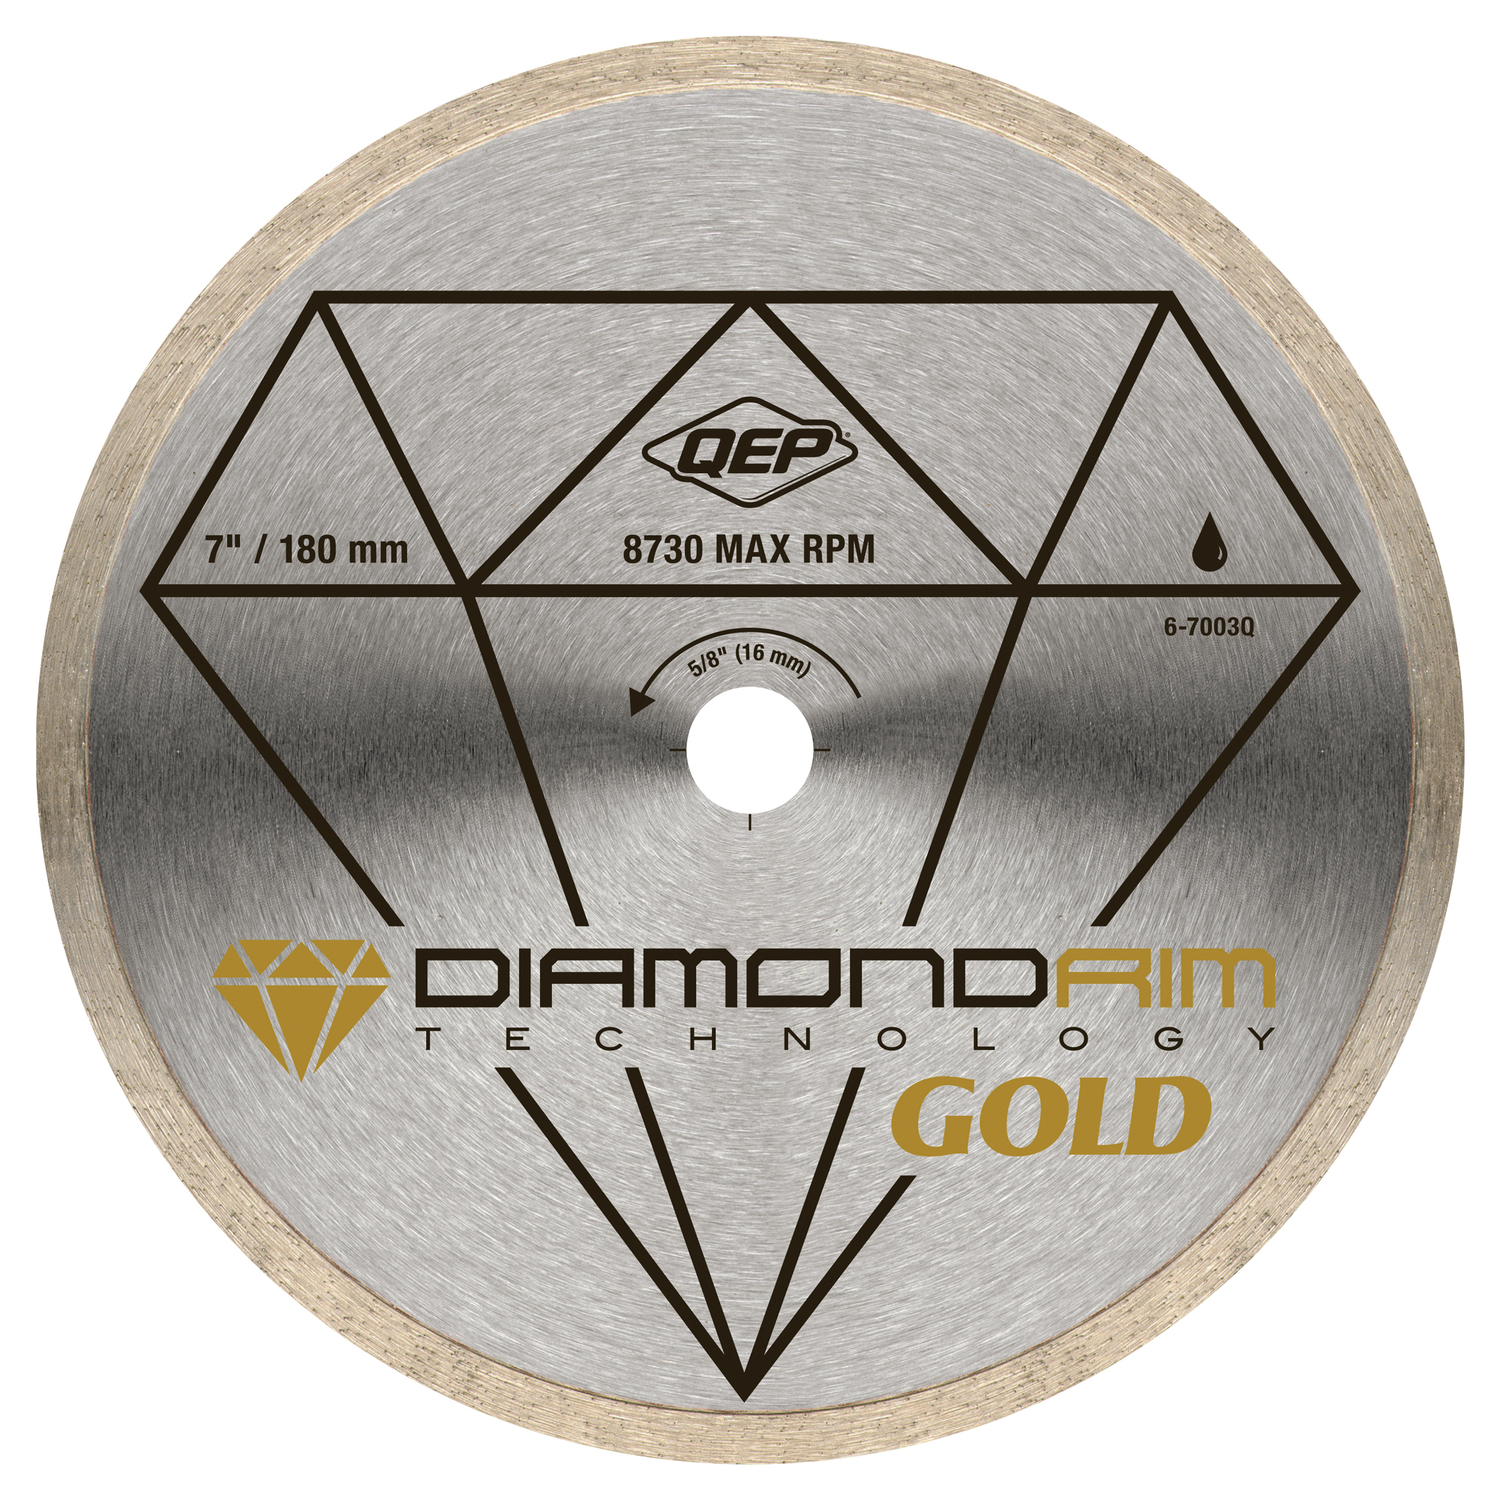 QEP  7 in.  Steel  5/8  Gold  1 pk Continuous Rim Diamond Saw Blade